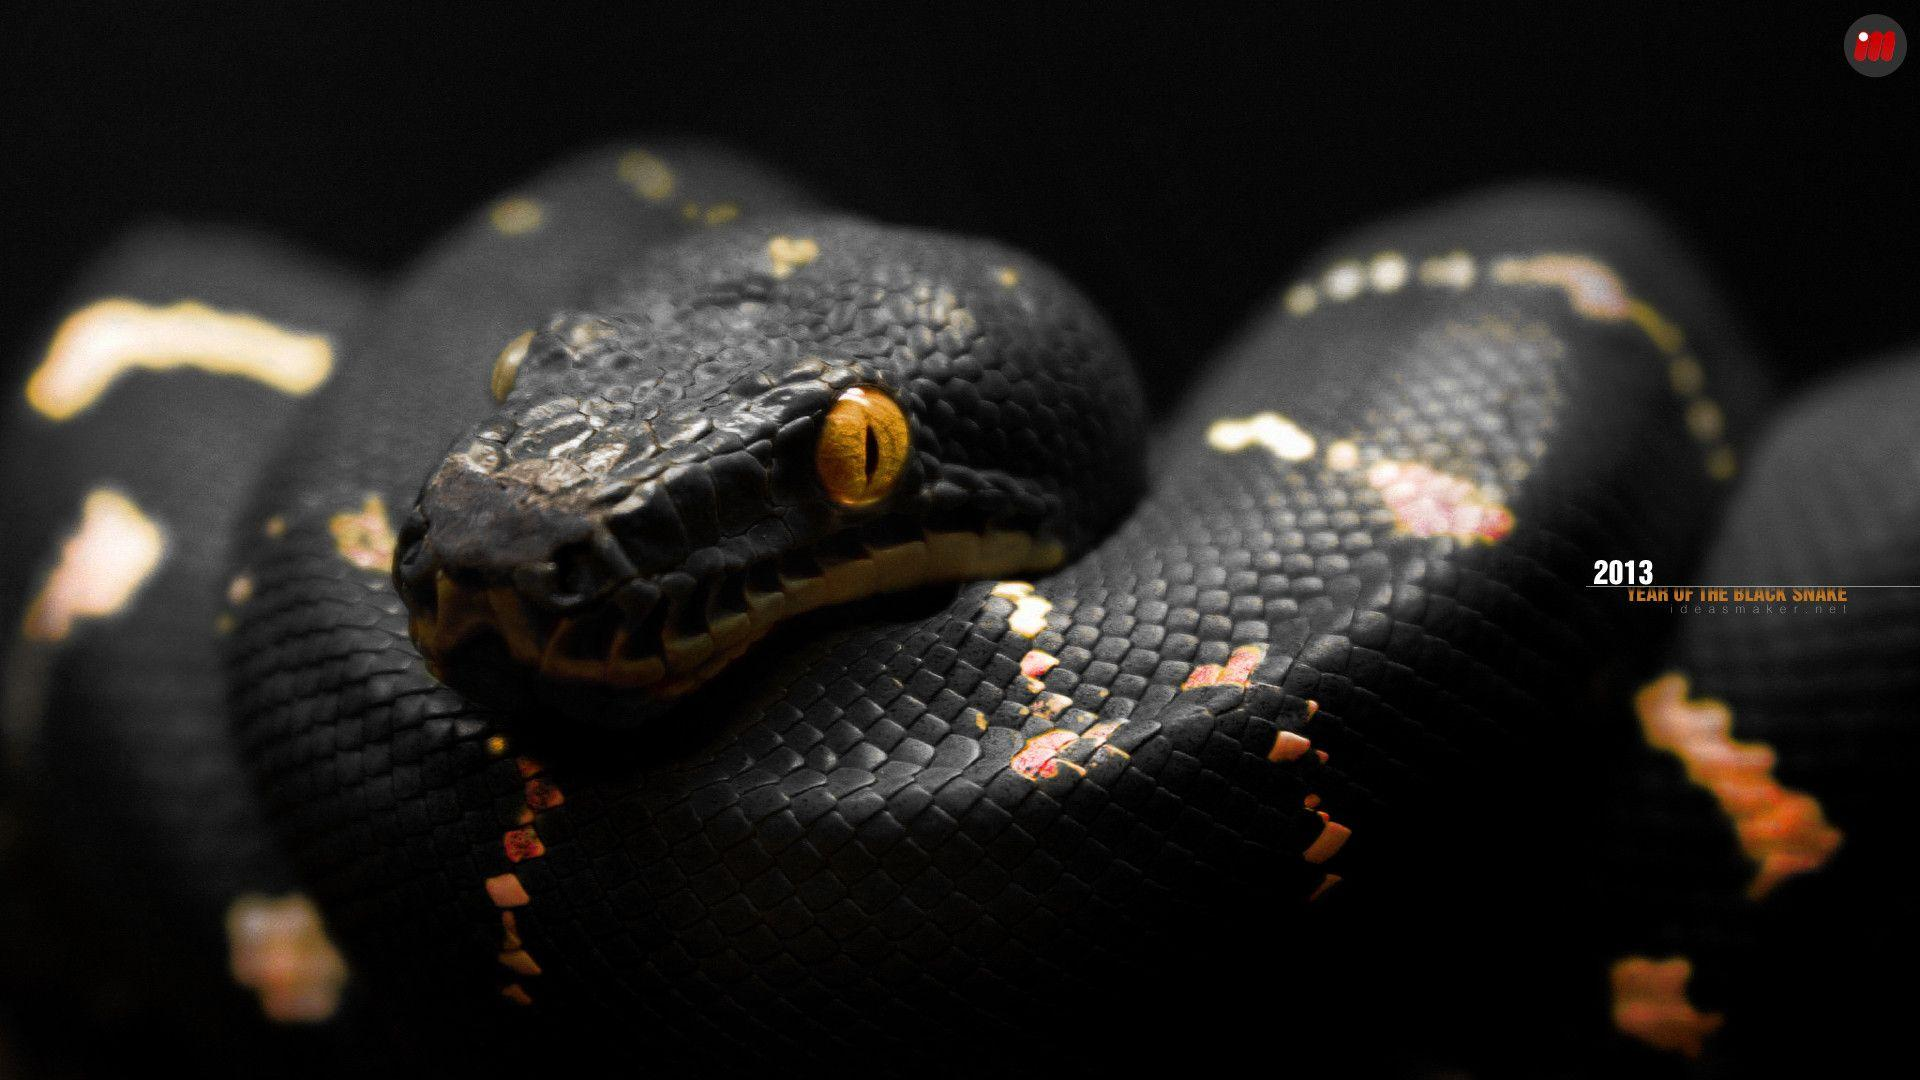 Snake HD Wallpapers Backgrounds Wallpaper 1600x1000 Black